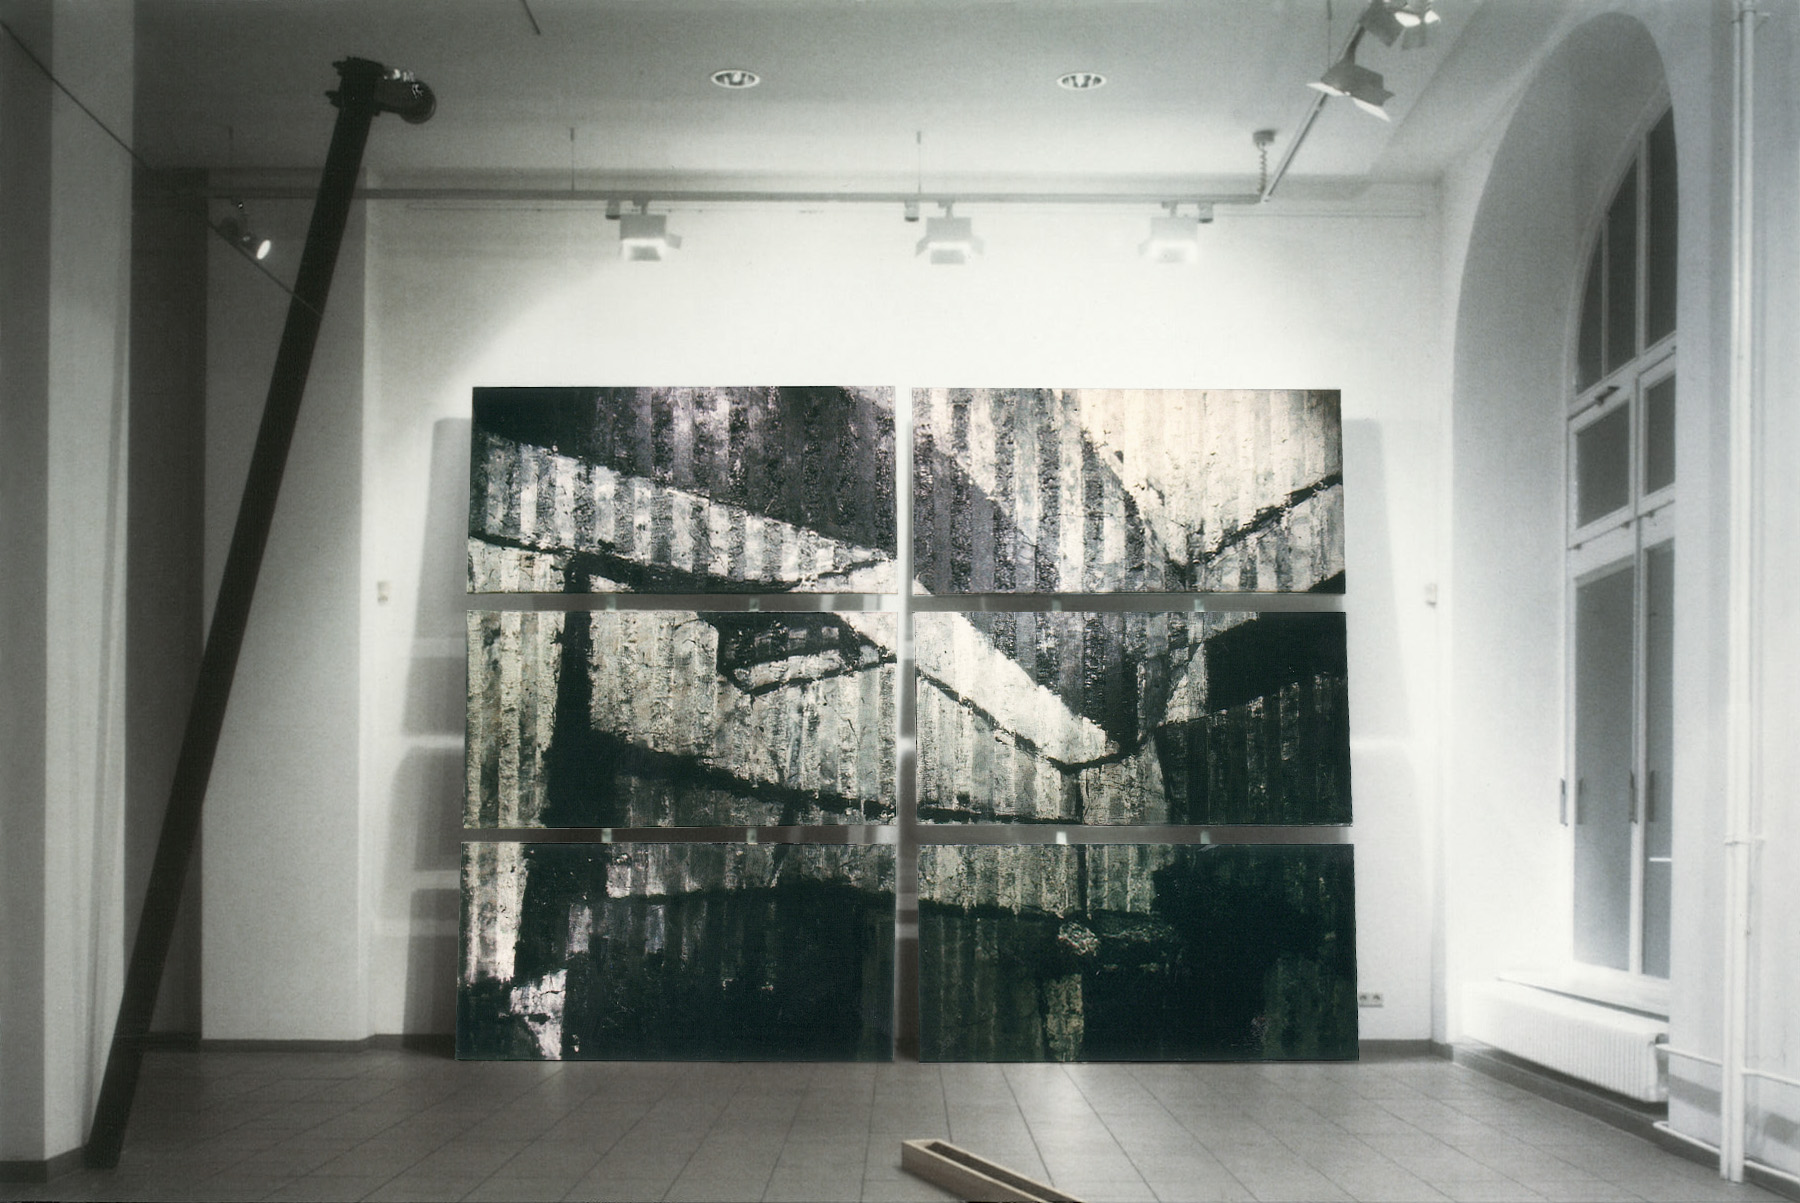 Propositions, Schering Kunstverein, Berlin